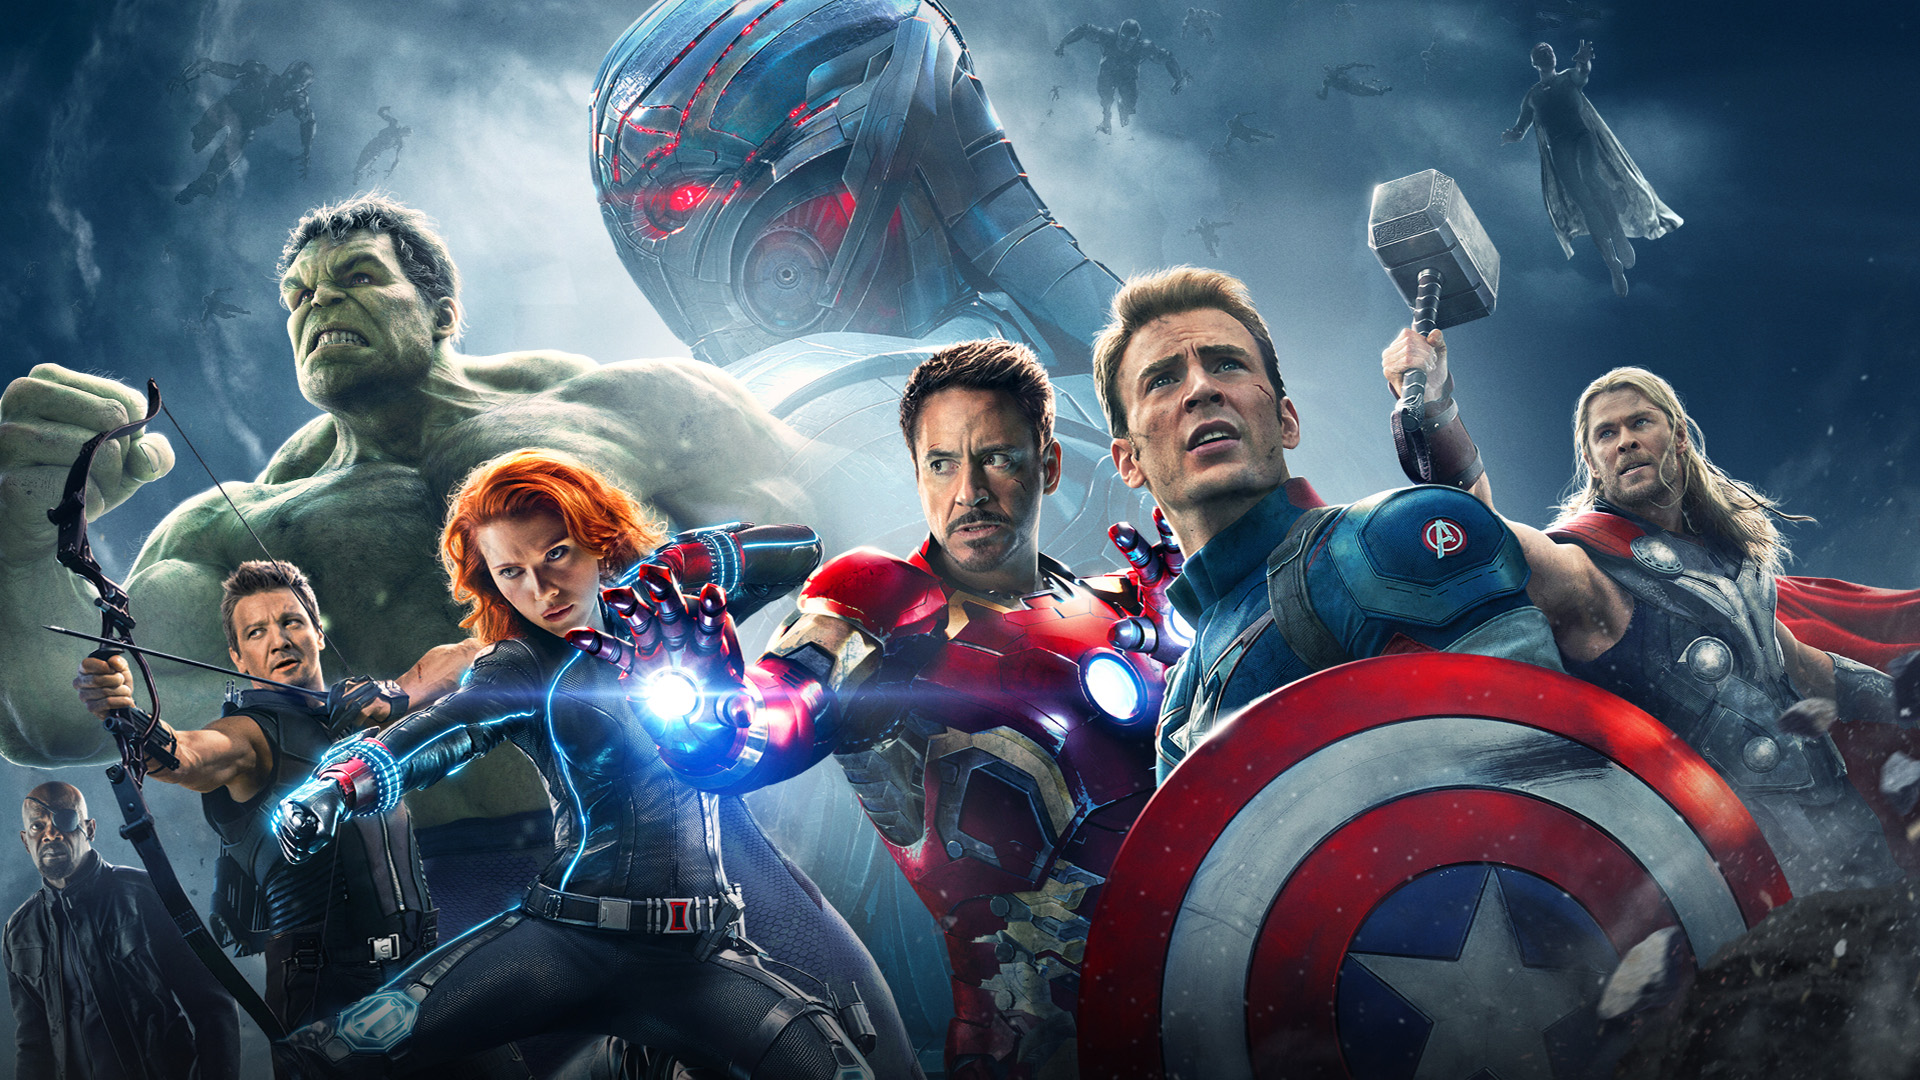 Avengers Age Of Ultron Hd Wallpaper Background Image